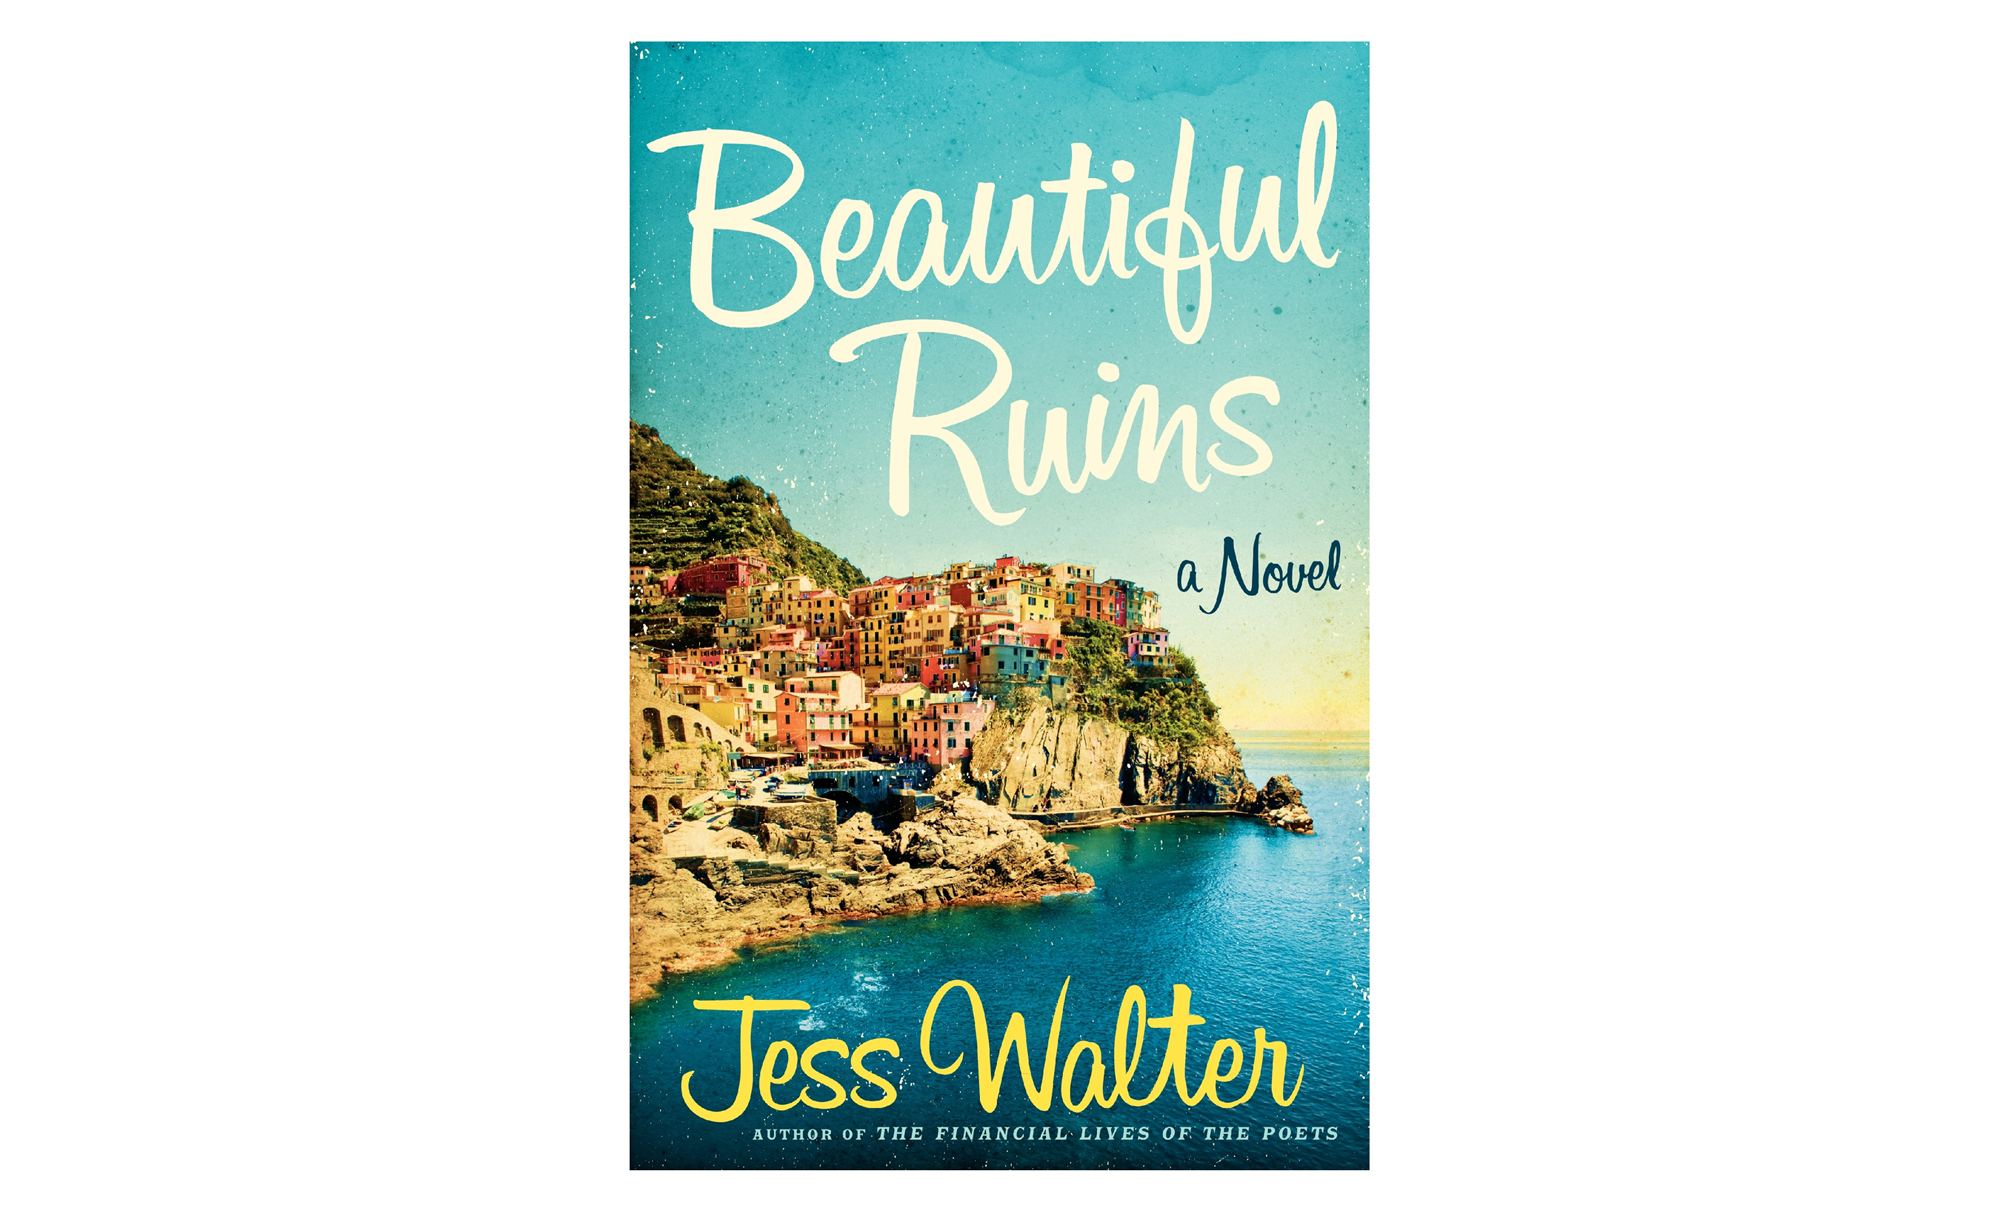 Beautiful Ruins, by Jess Walter